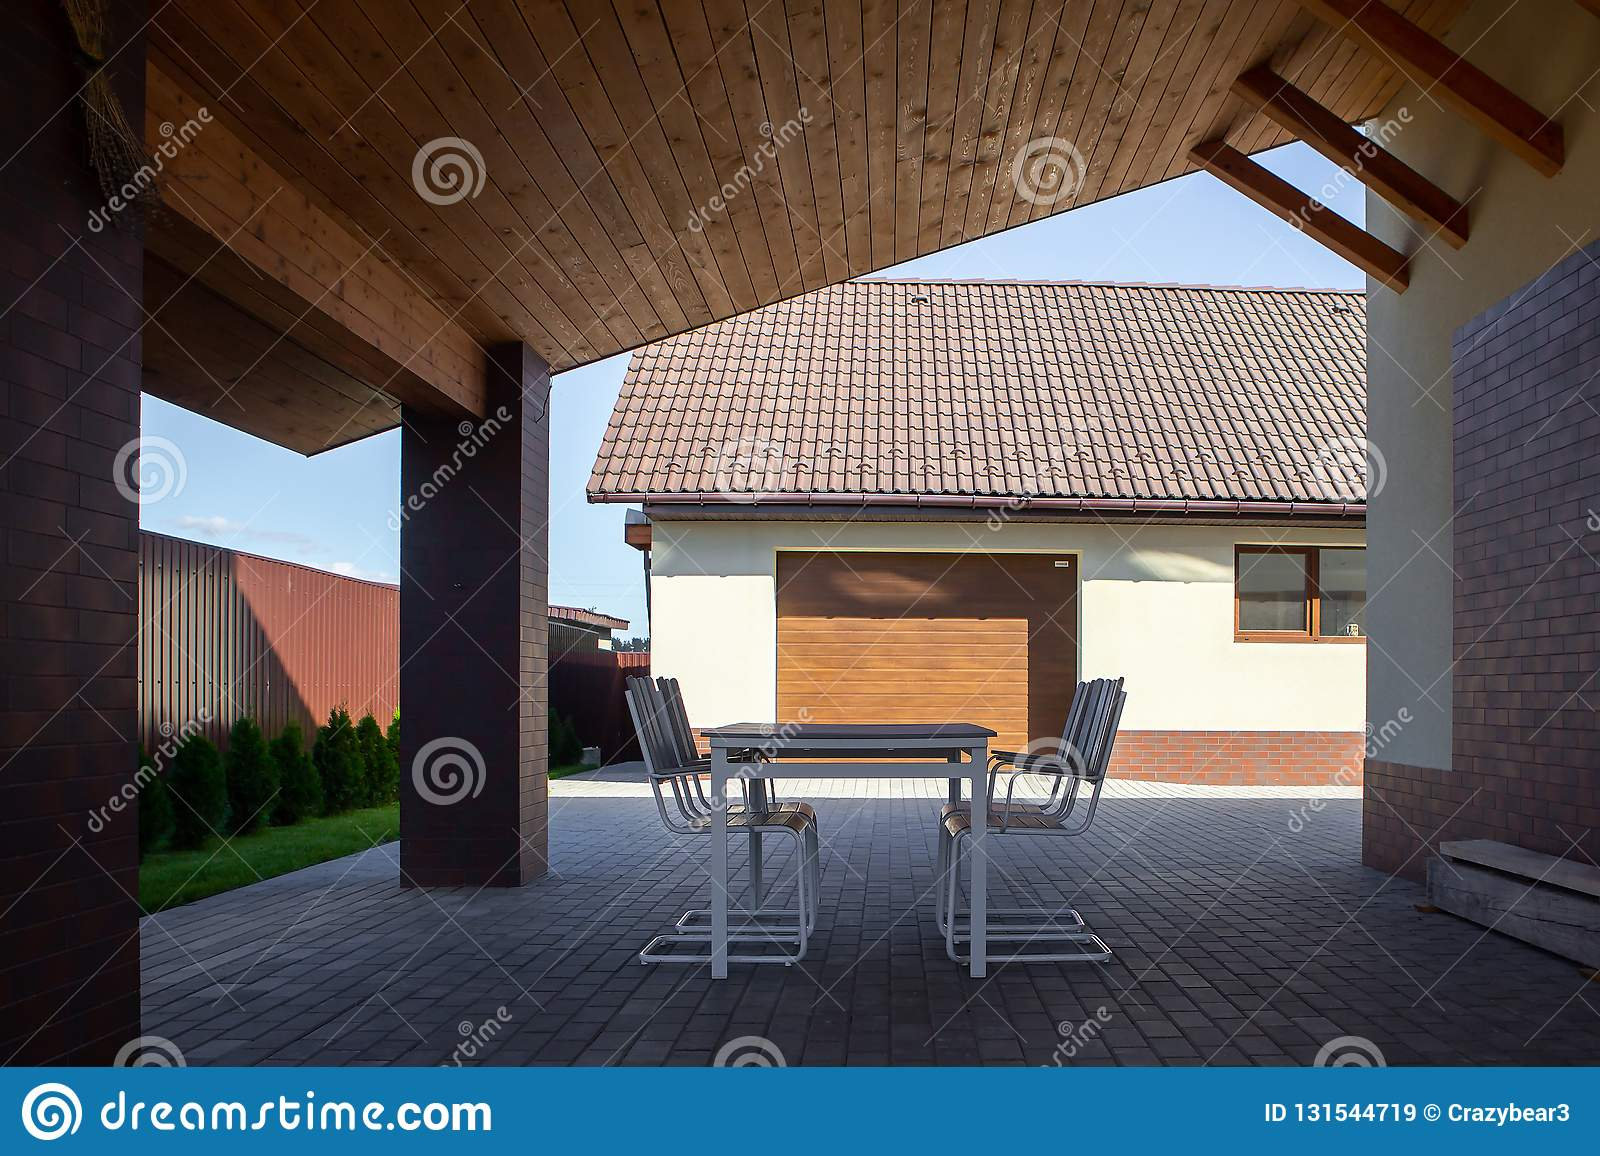 Garden table, chairs stand under a canopy in the shade. Hot sunny day